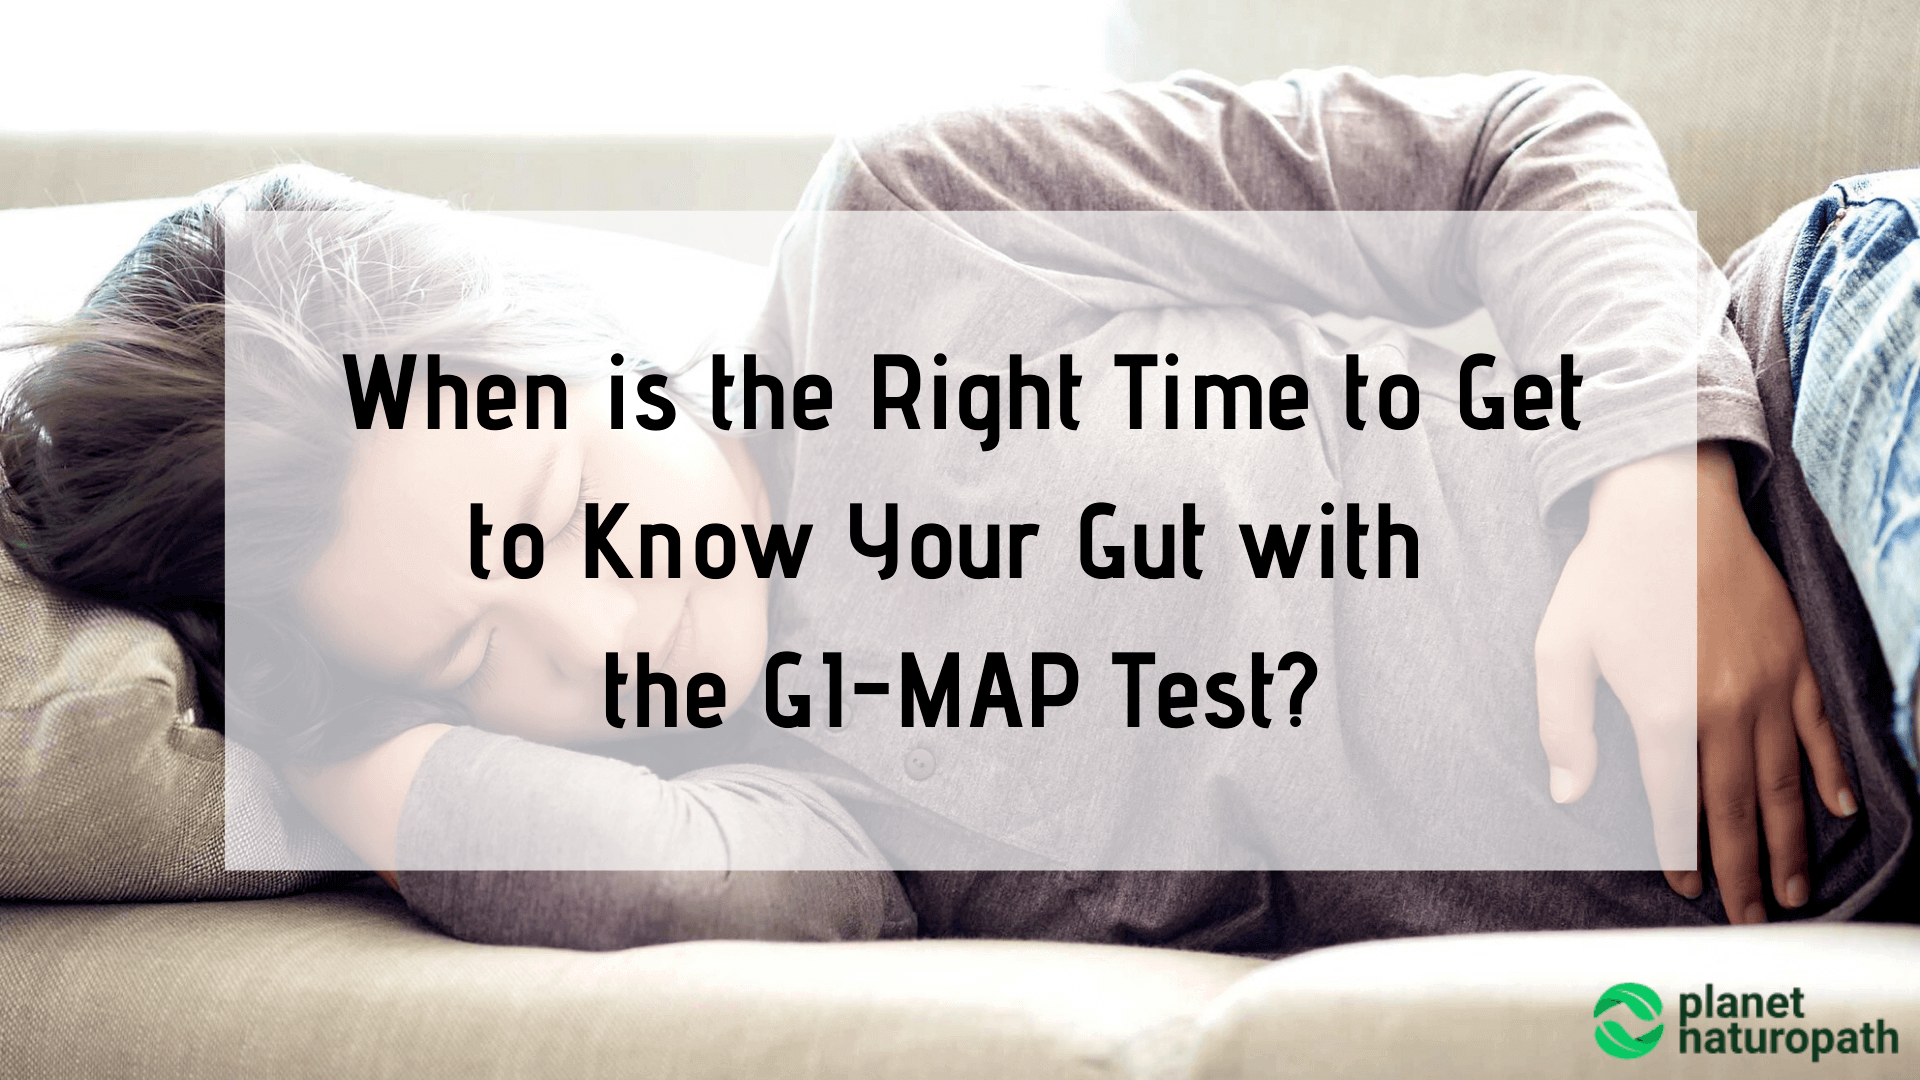 When-is-the-Time-to-Get-to-Know-Your-Gut-with-the-GI-MAP-Test